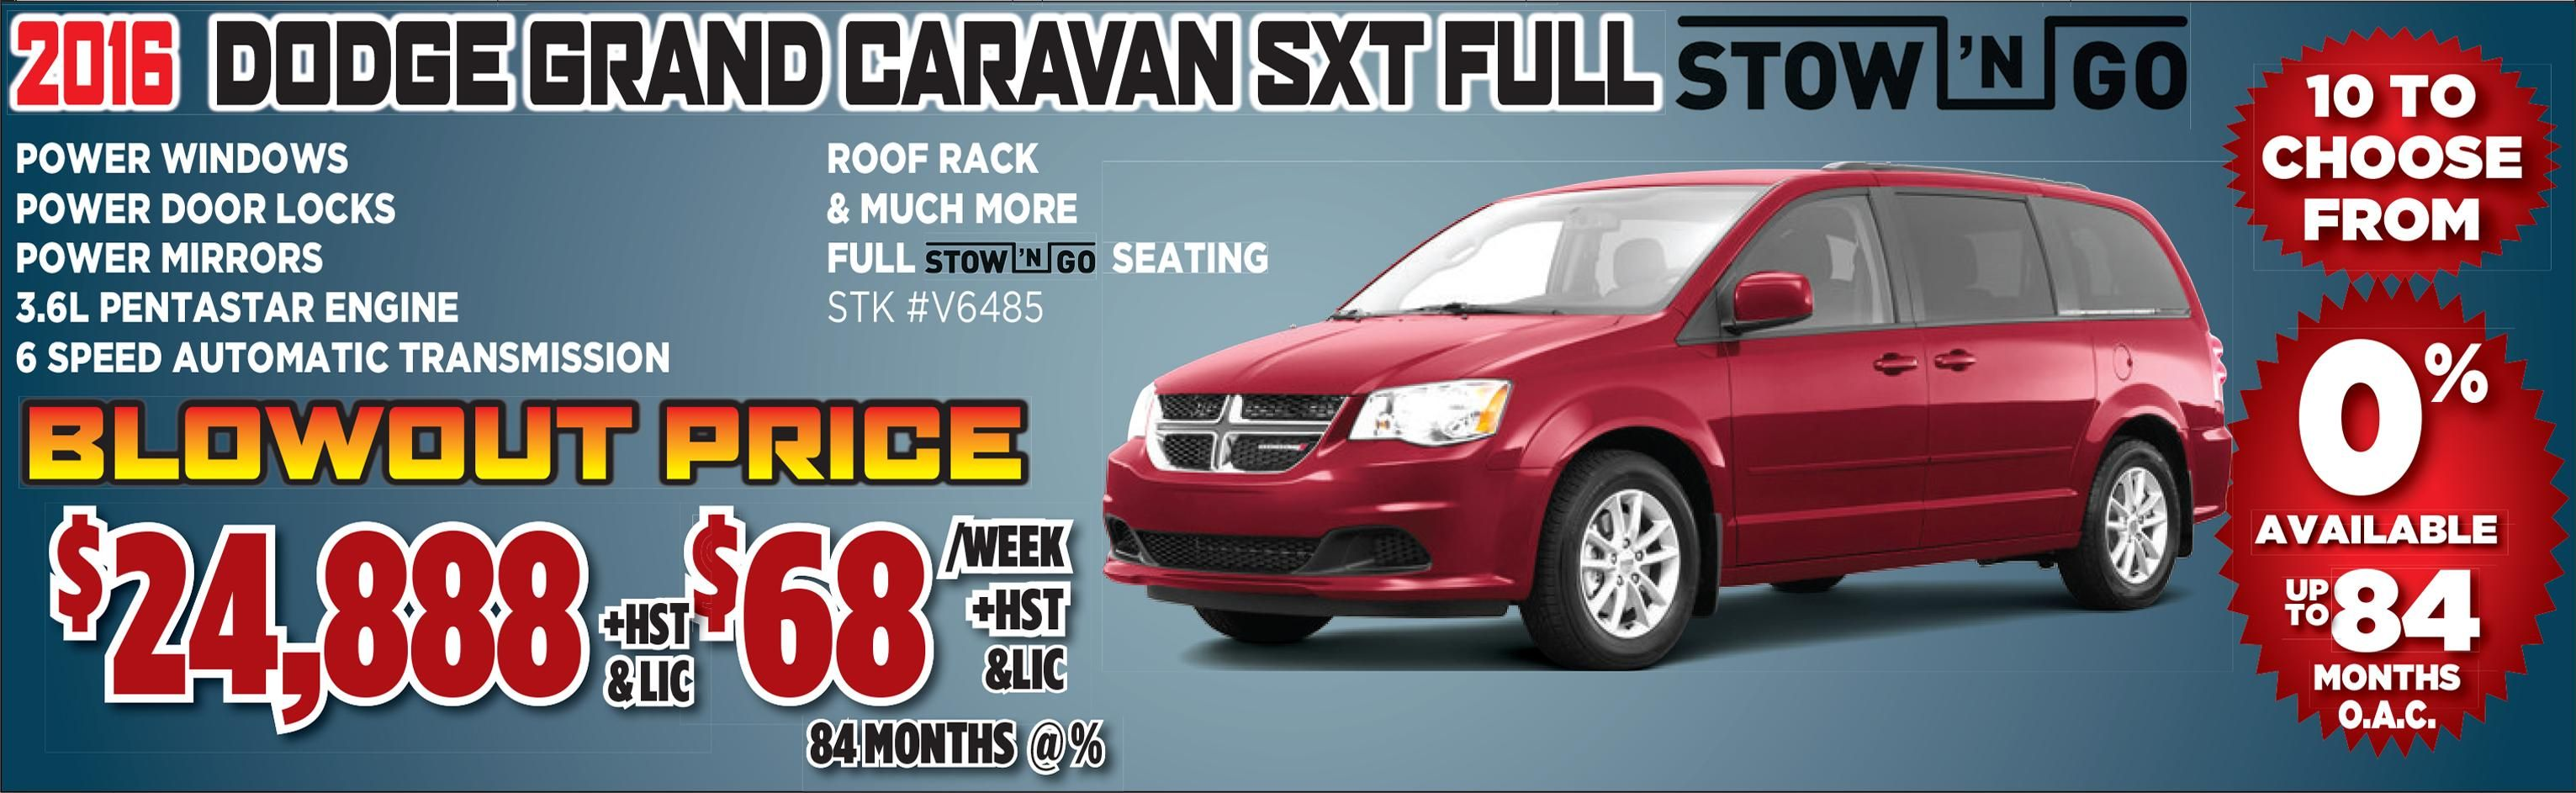 2016 Dodge Grand Caravan Sxt With Red Exterior And Grey Interior